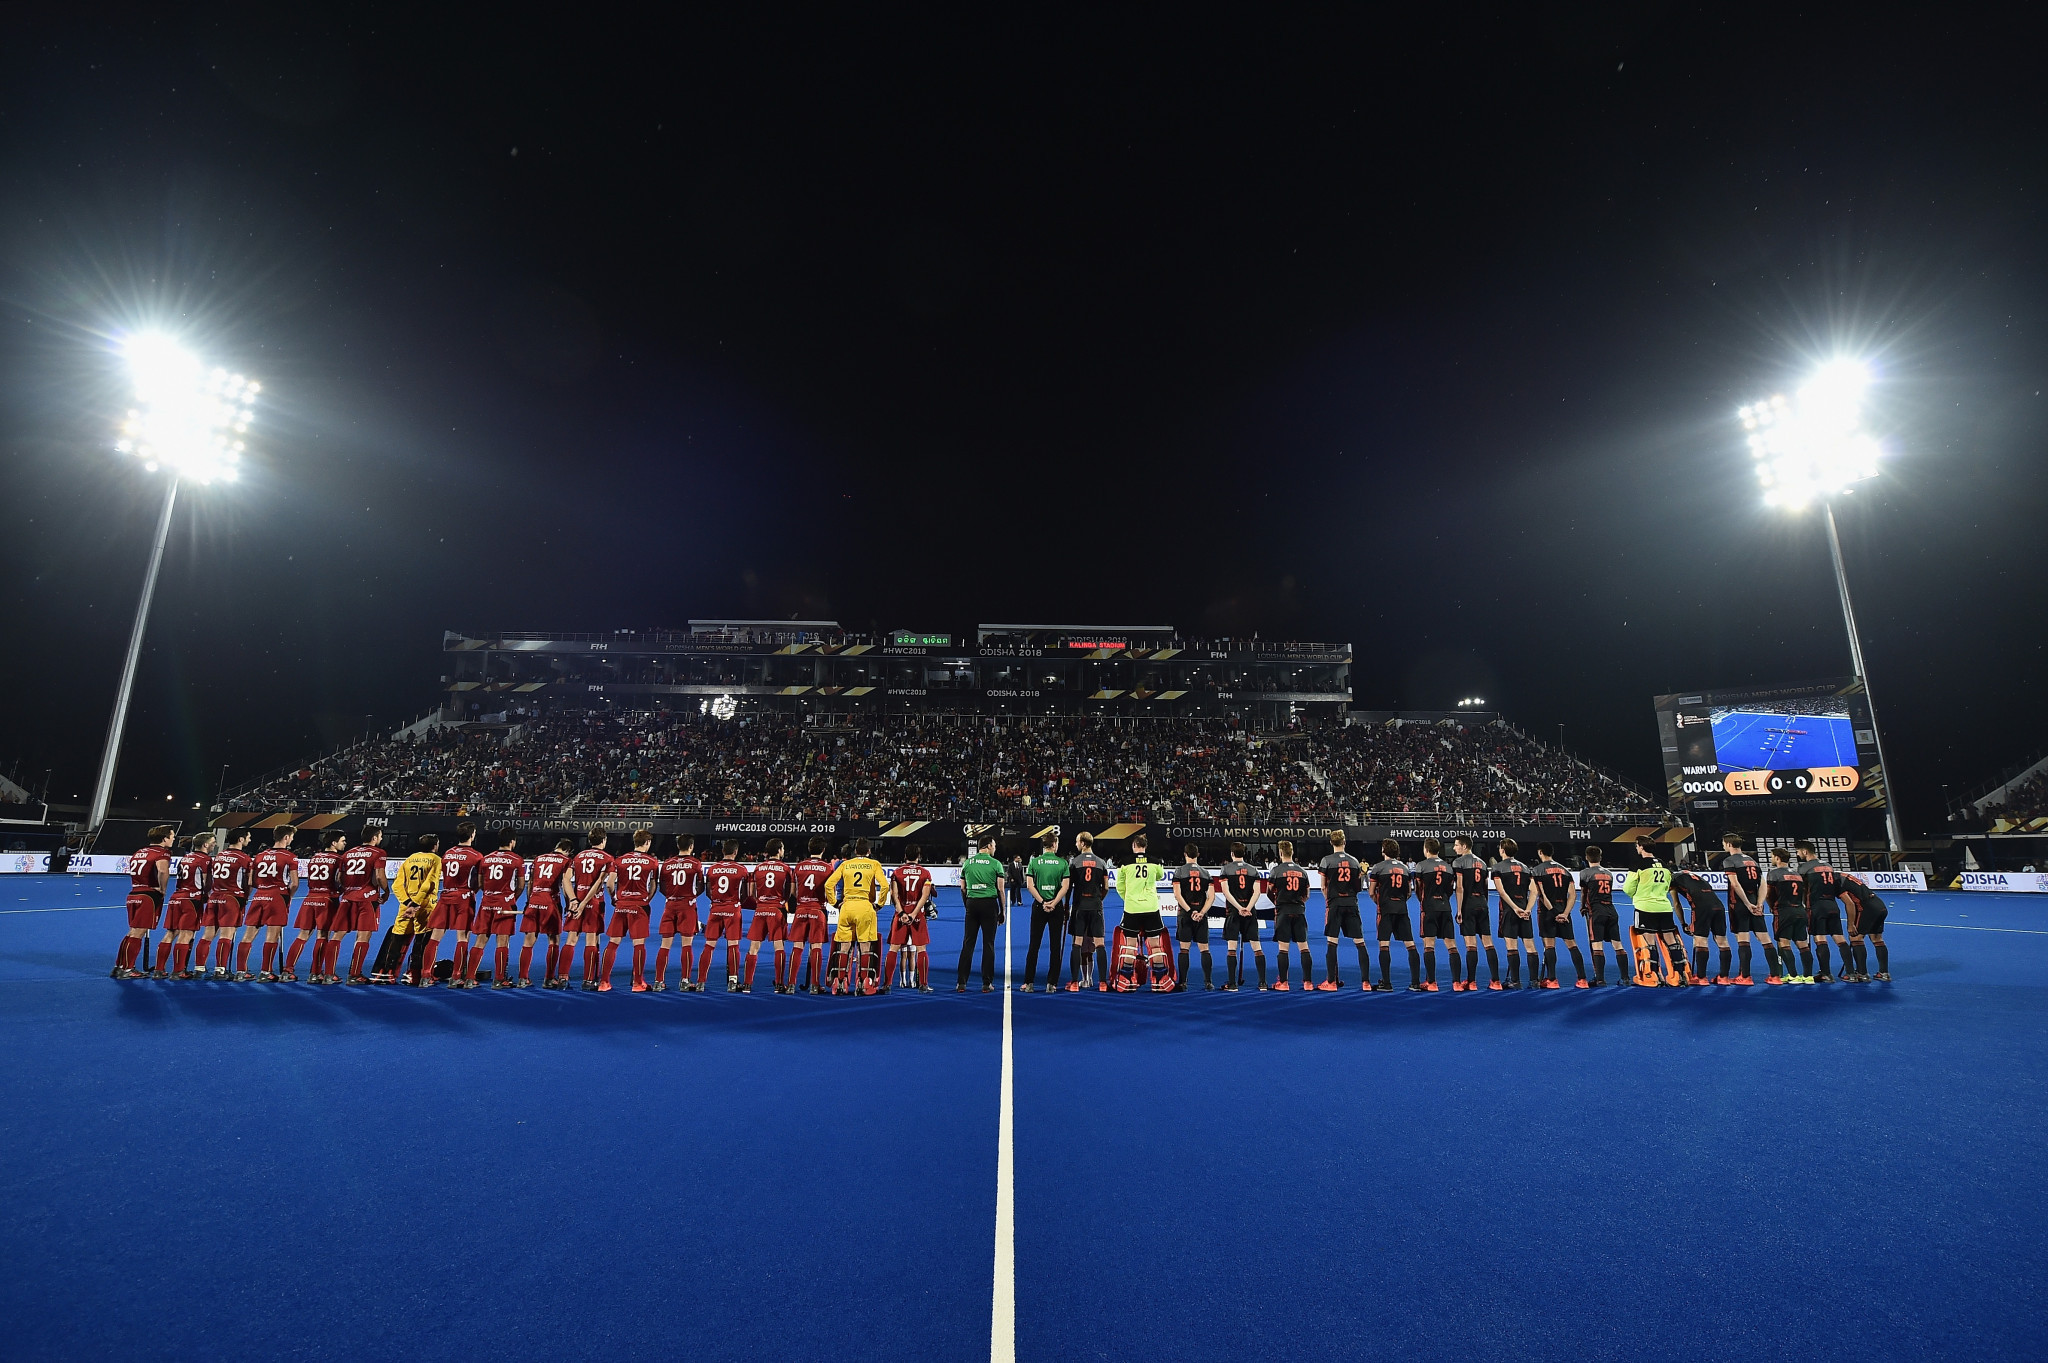 The FIH Series Finals event in Bhubaneswar will be held at Kalinga Stadium, where the 2018 FIH Men's Hockey World Cup was held ©Getty Images